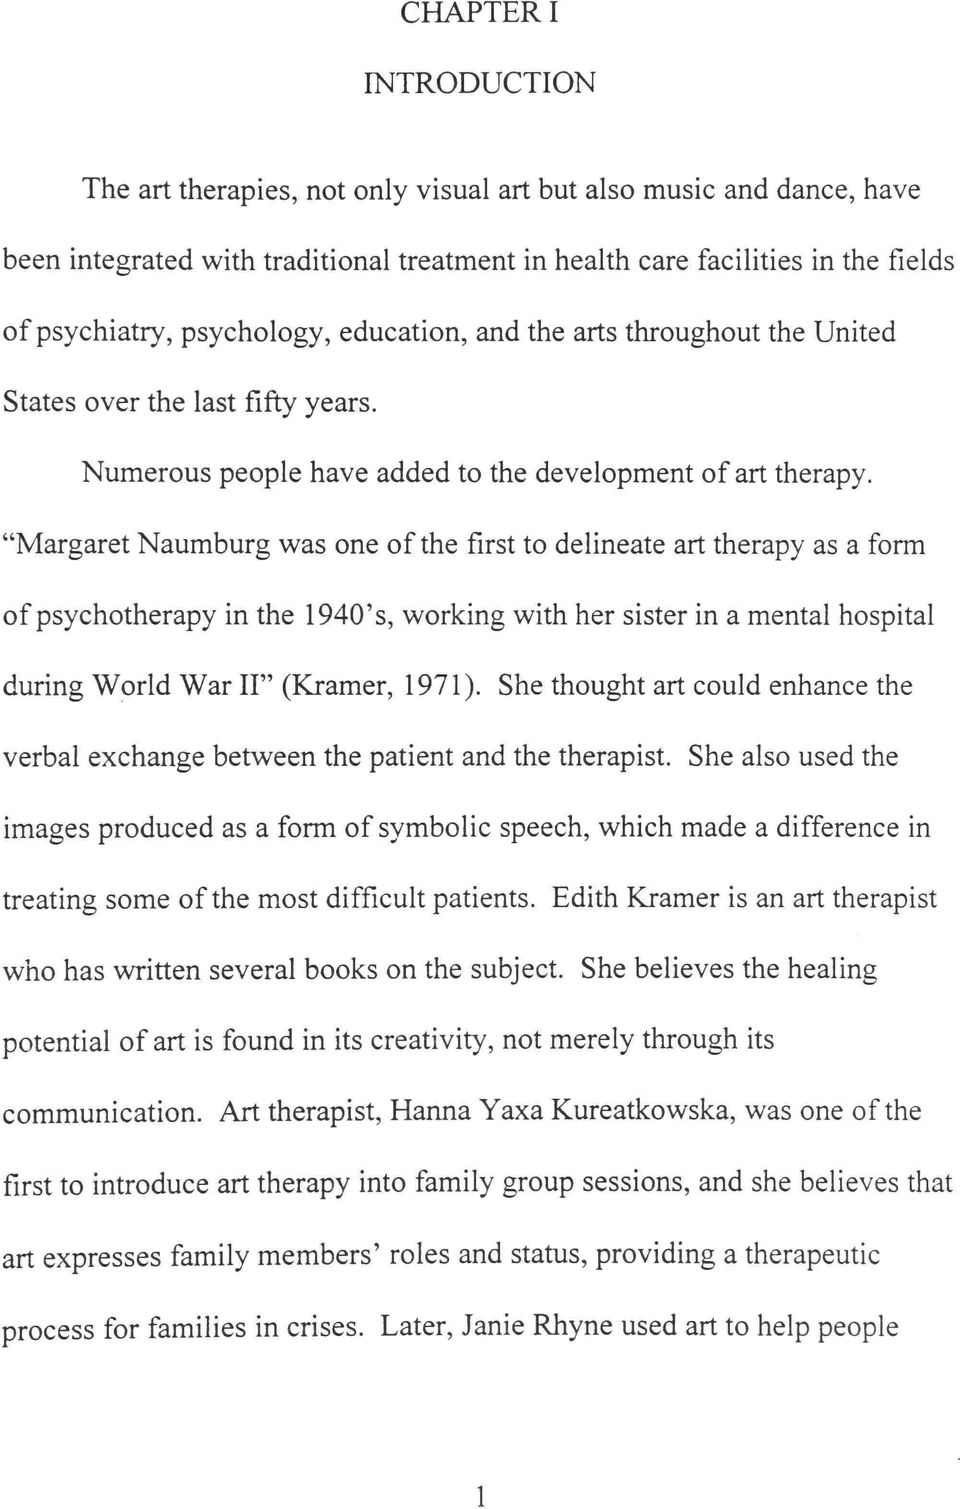 """Margaret Naumburg was one of the first to delineate art therapy as a form of psychotherapy in the 1940's, working with her sister in a mental hospital during World War II"" (Kramer, 1971)."